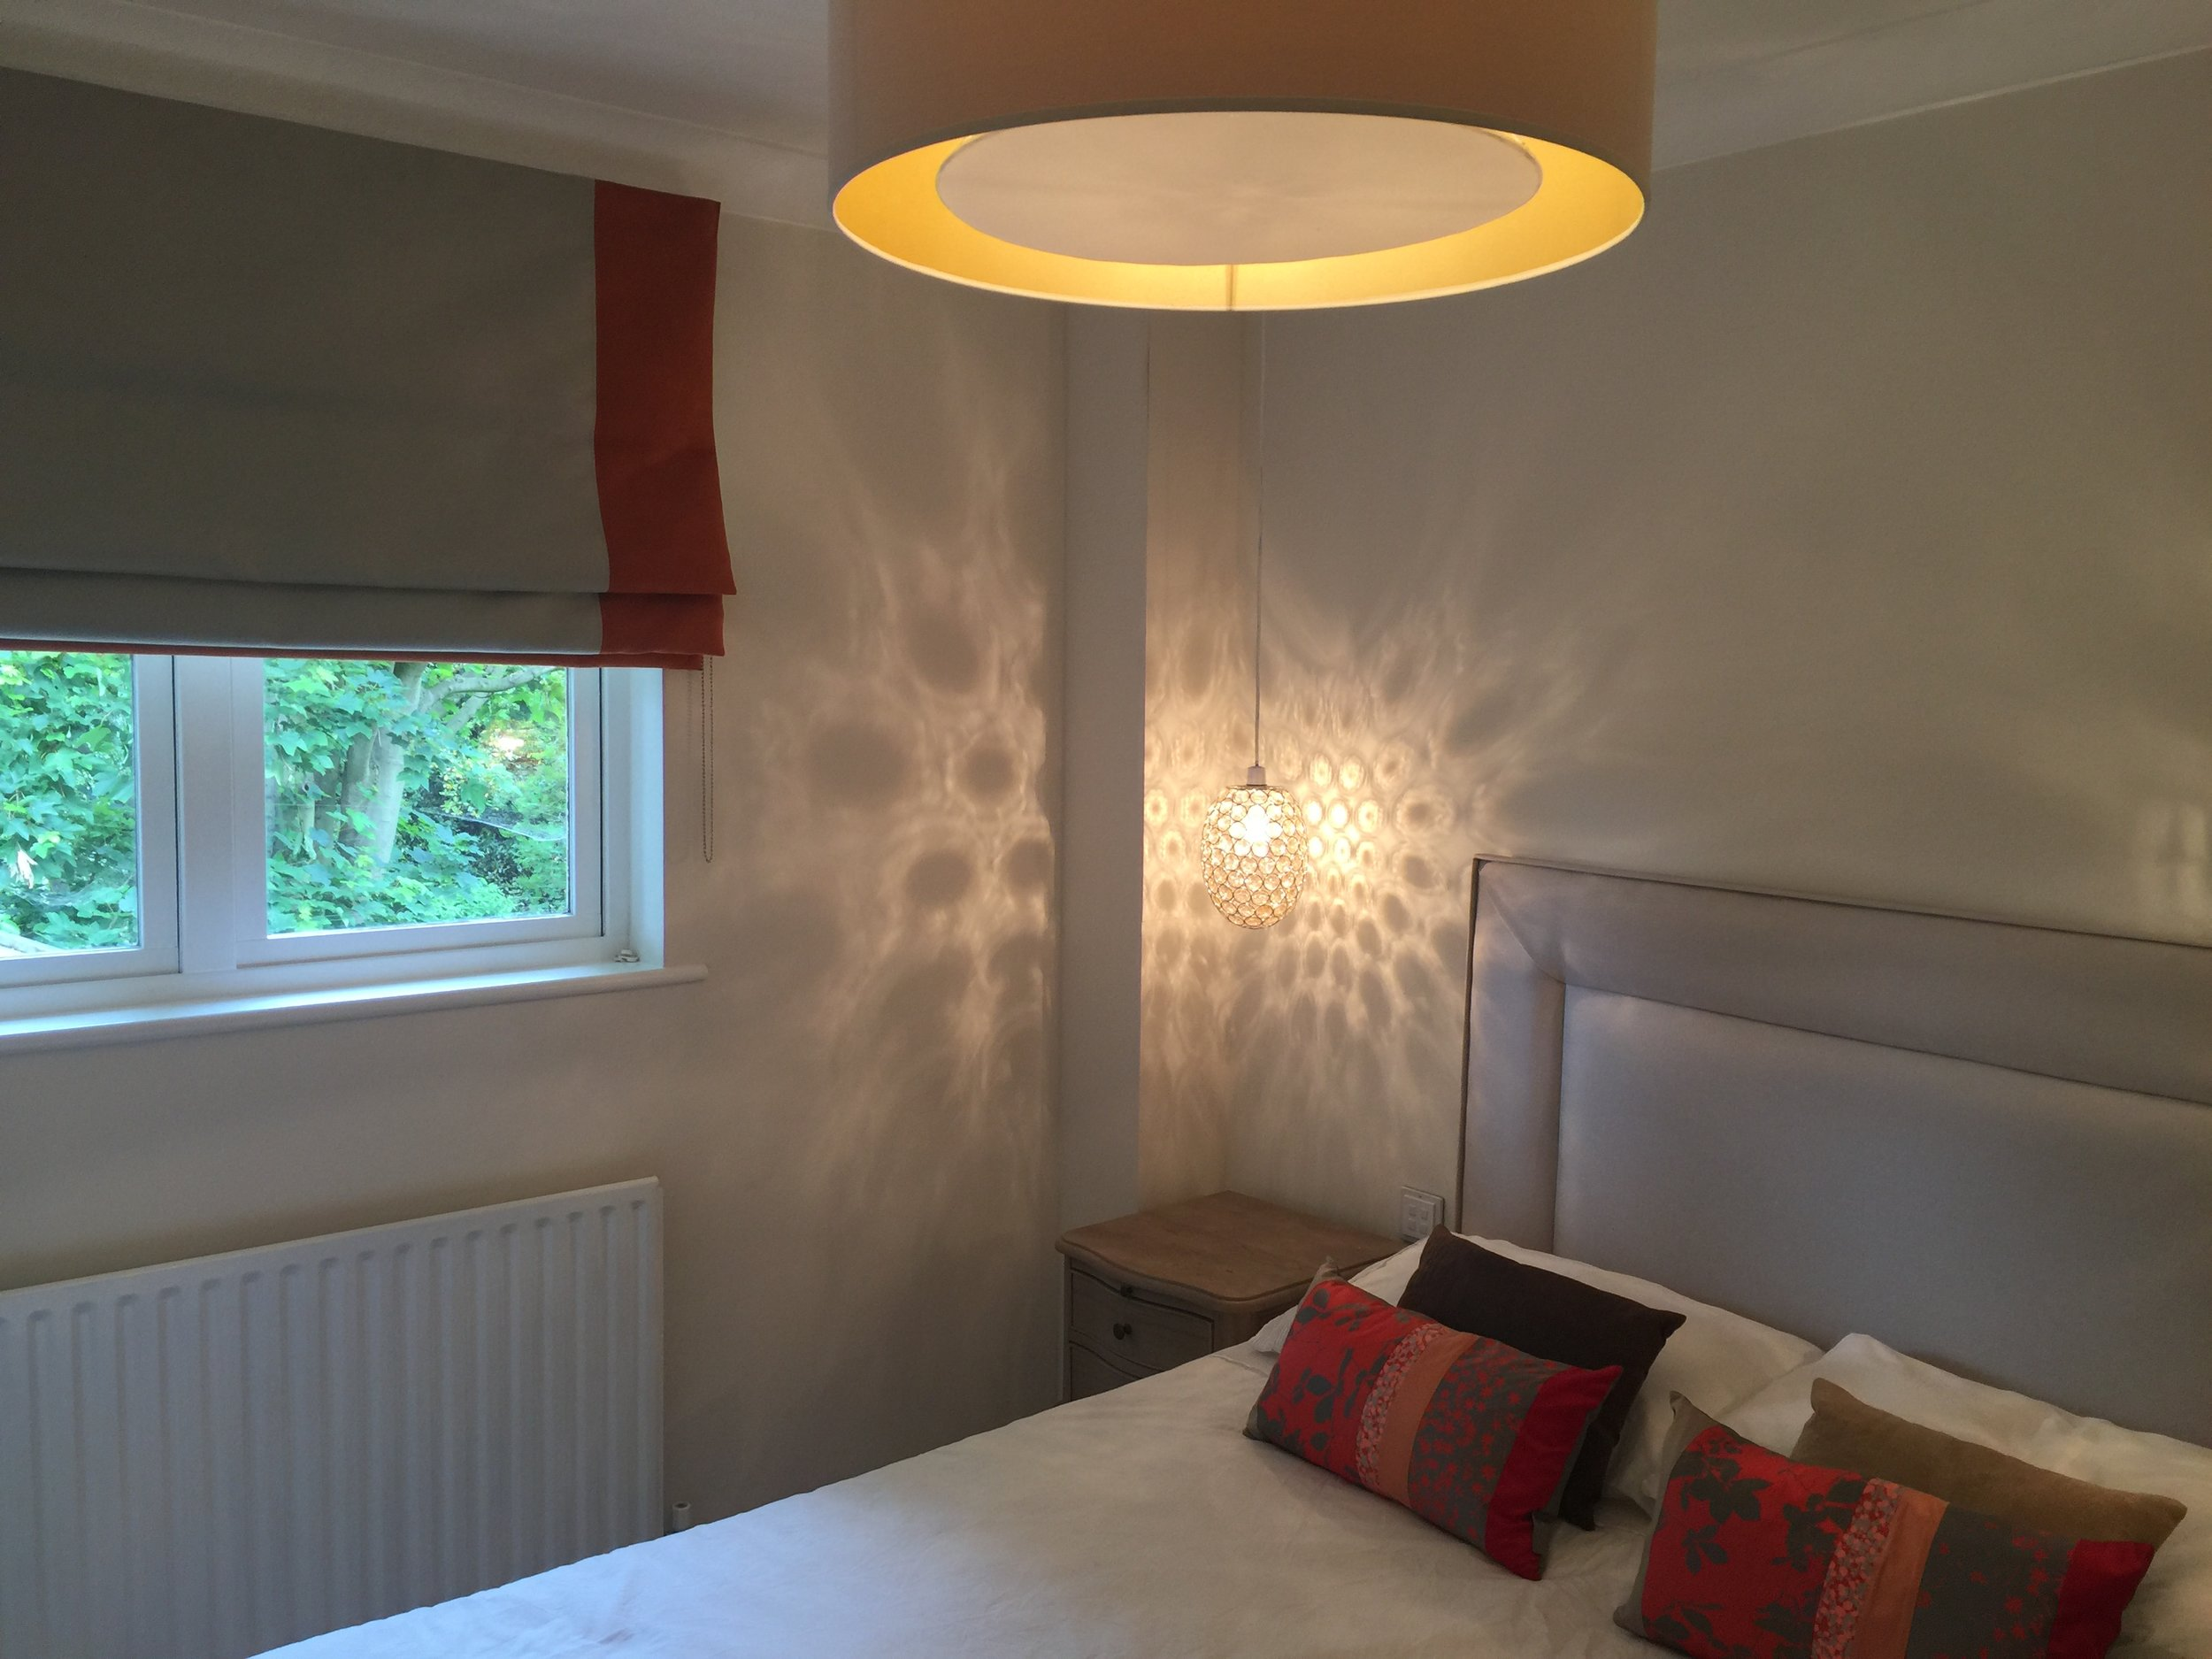 Granville Park  interior design project:  Pretty pendent lights creating and a bespoke cylinder lampshade with diffuser to create a very soft and pretty light, controlled with dimmer switches.